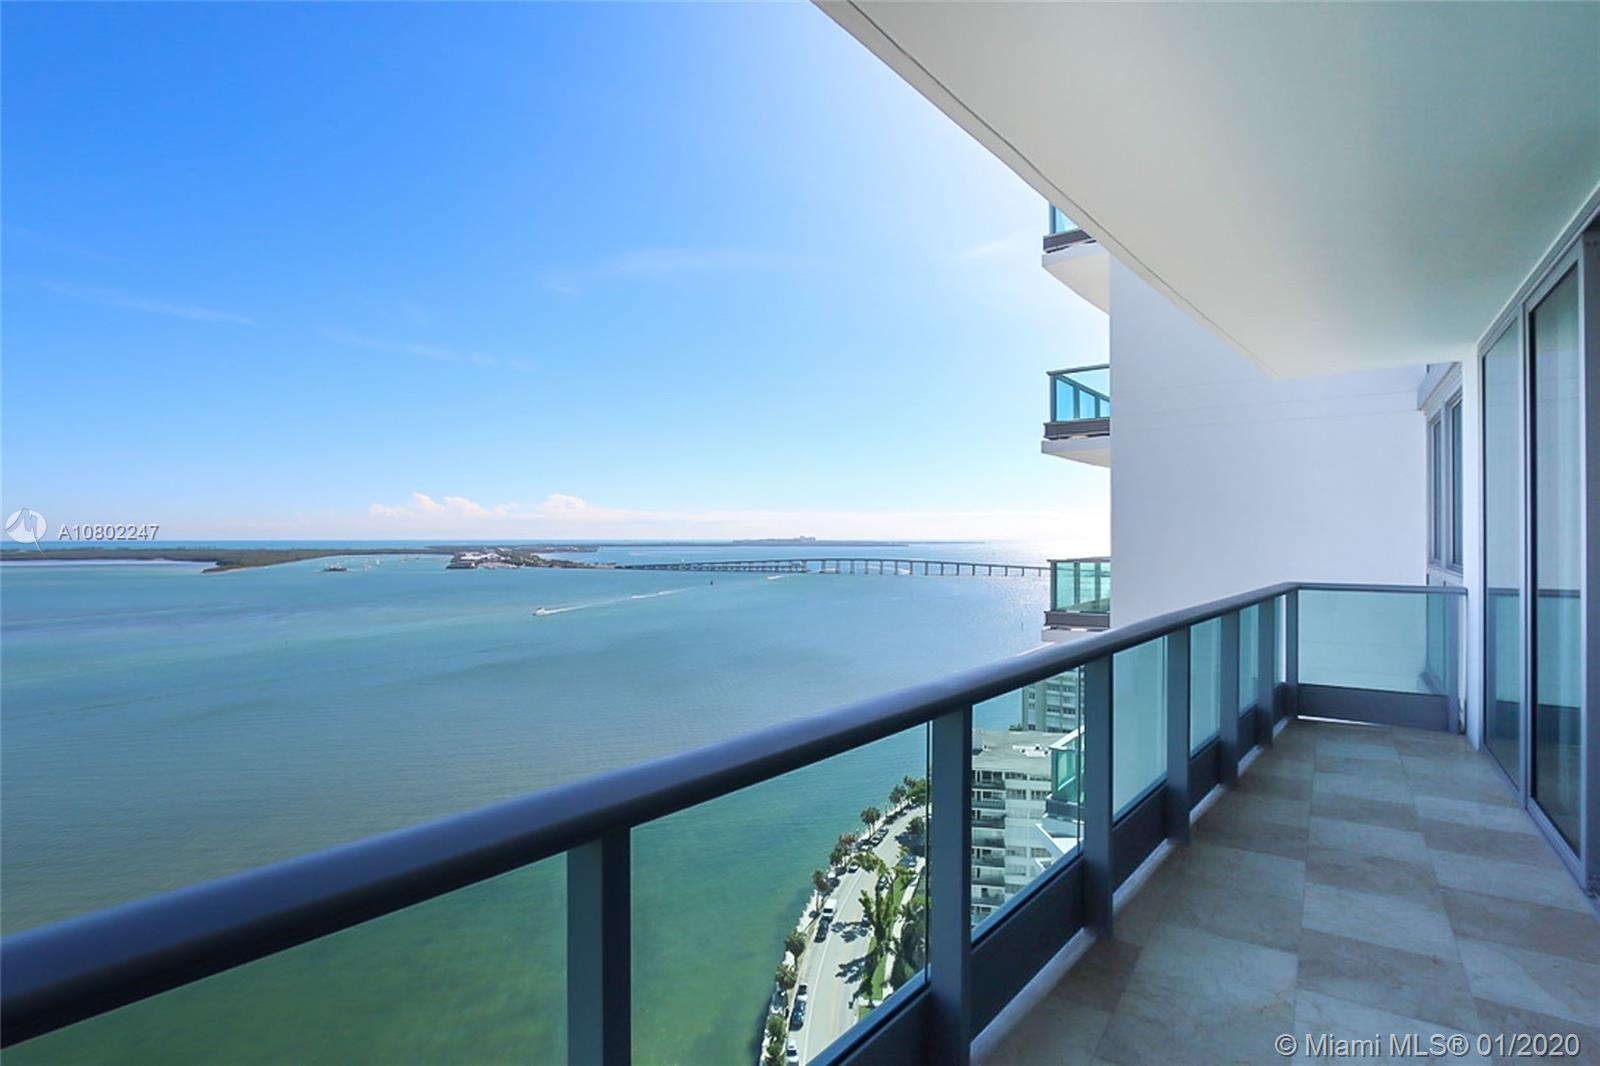 IMPECCABLE UNIT AT sought after JADE RESIDENCES. Large 2 BED + DEN with expansive balcony with breat